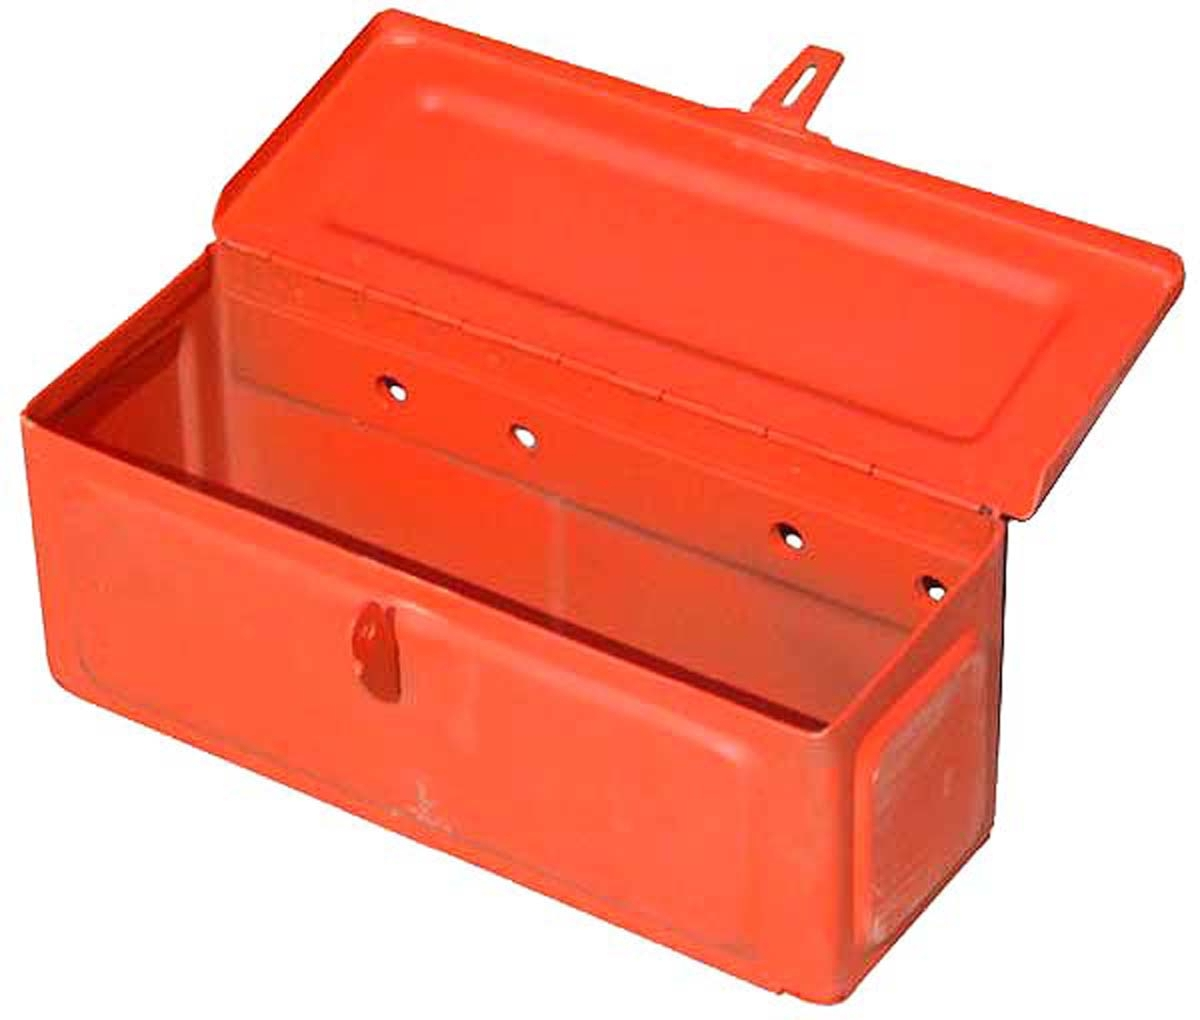 Tool Box For Tractor : Toolbox universal case ih parts tractor